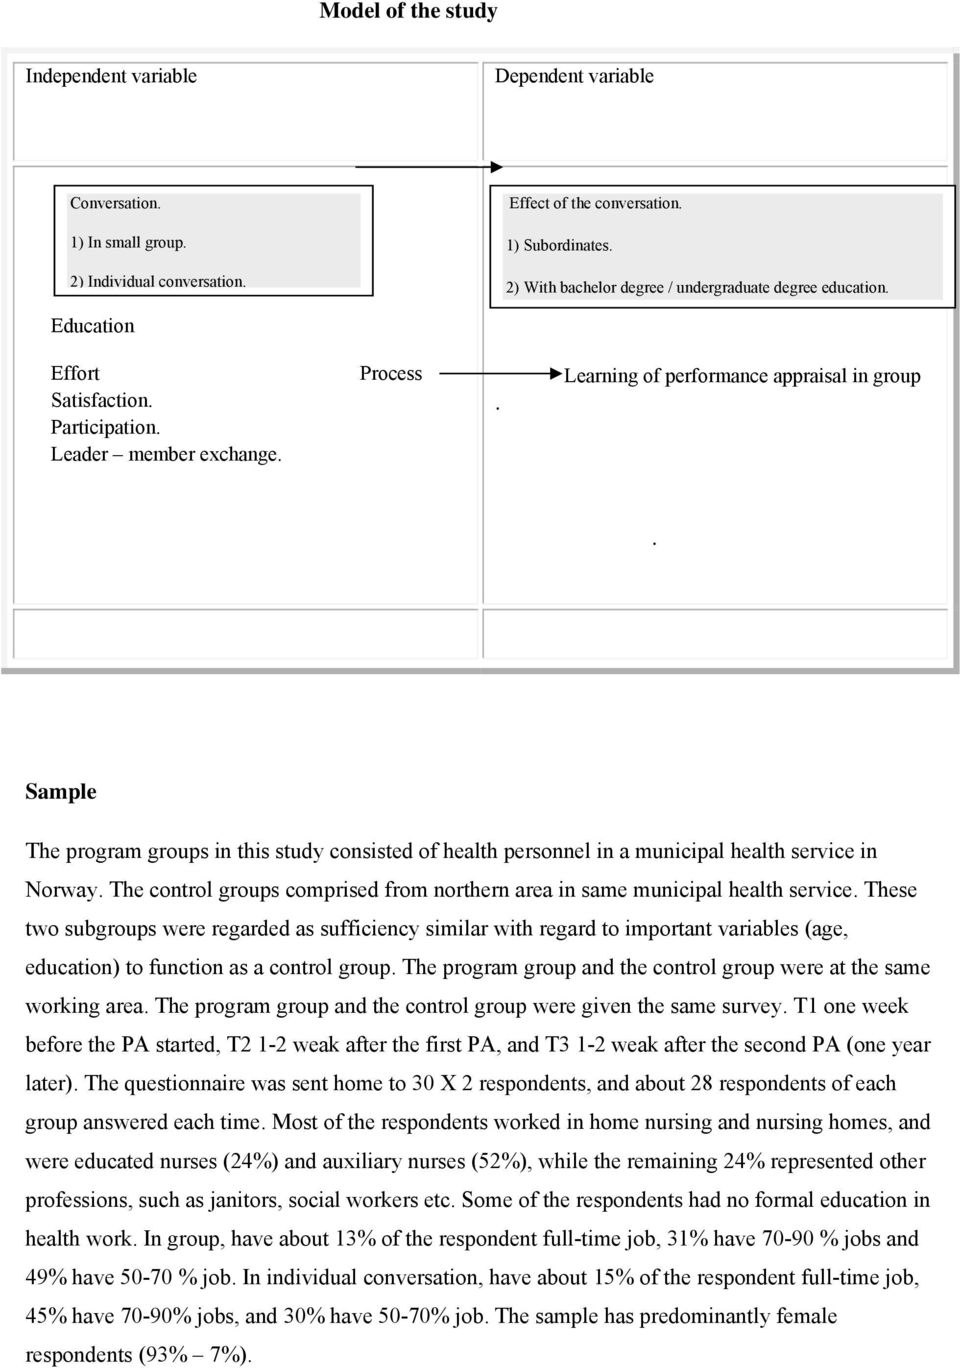 Sample The program groups in this study consisted of health personnel in a municipal health service in Norway. The control groups comprised from northern area in same municipal health service.